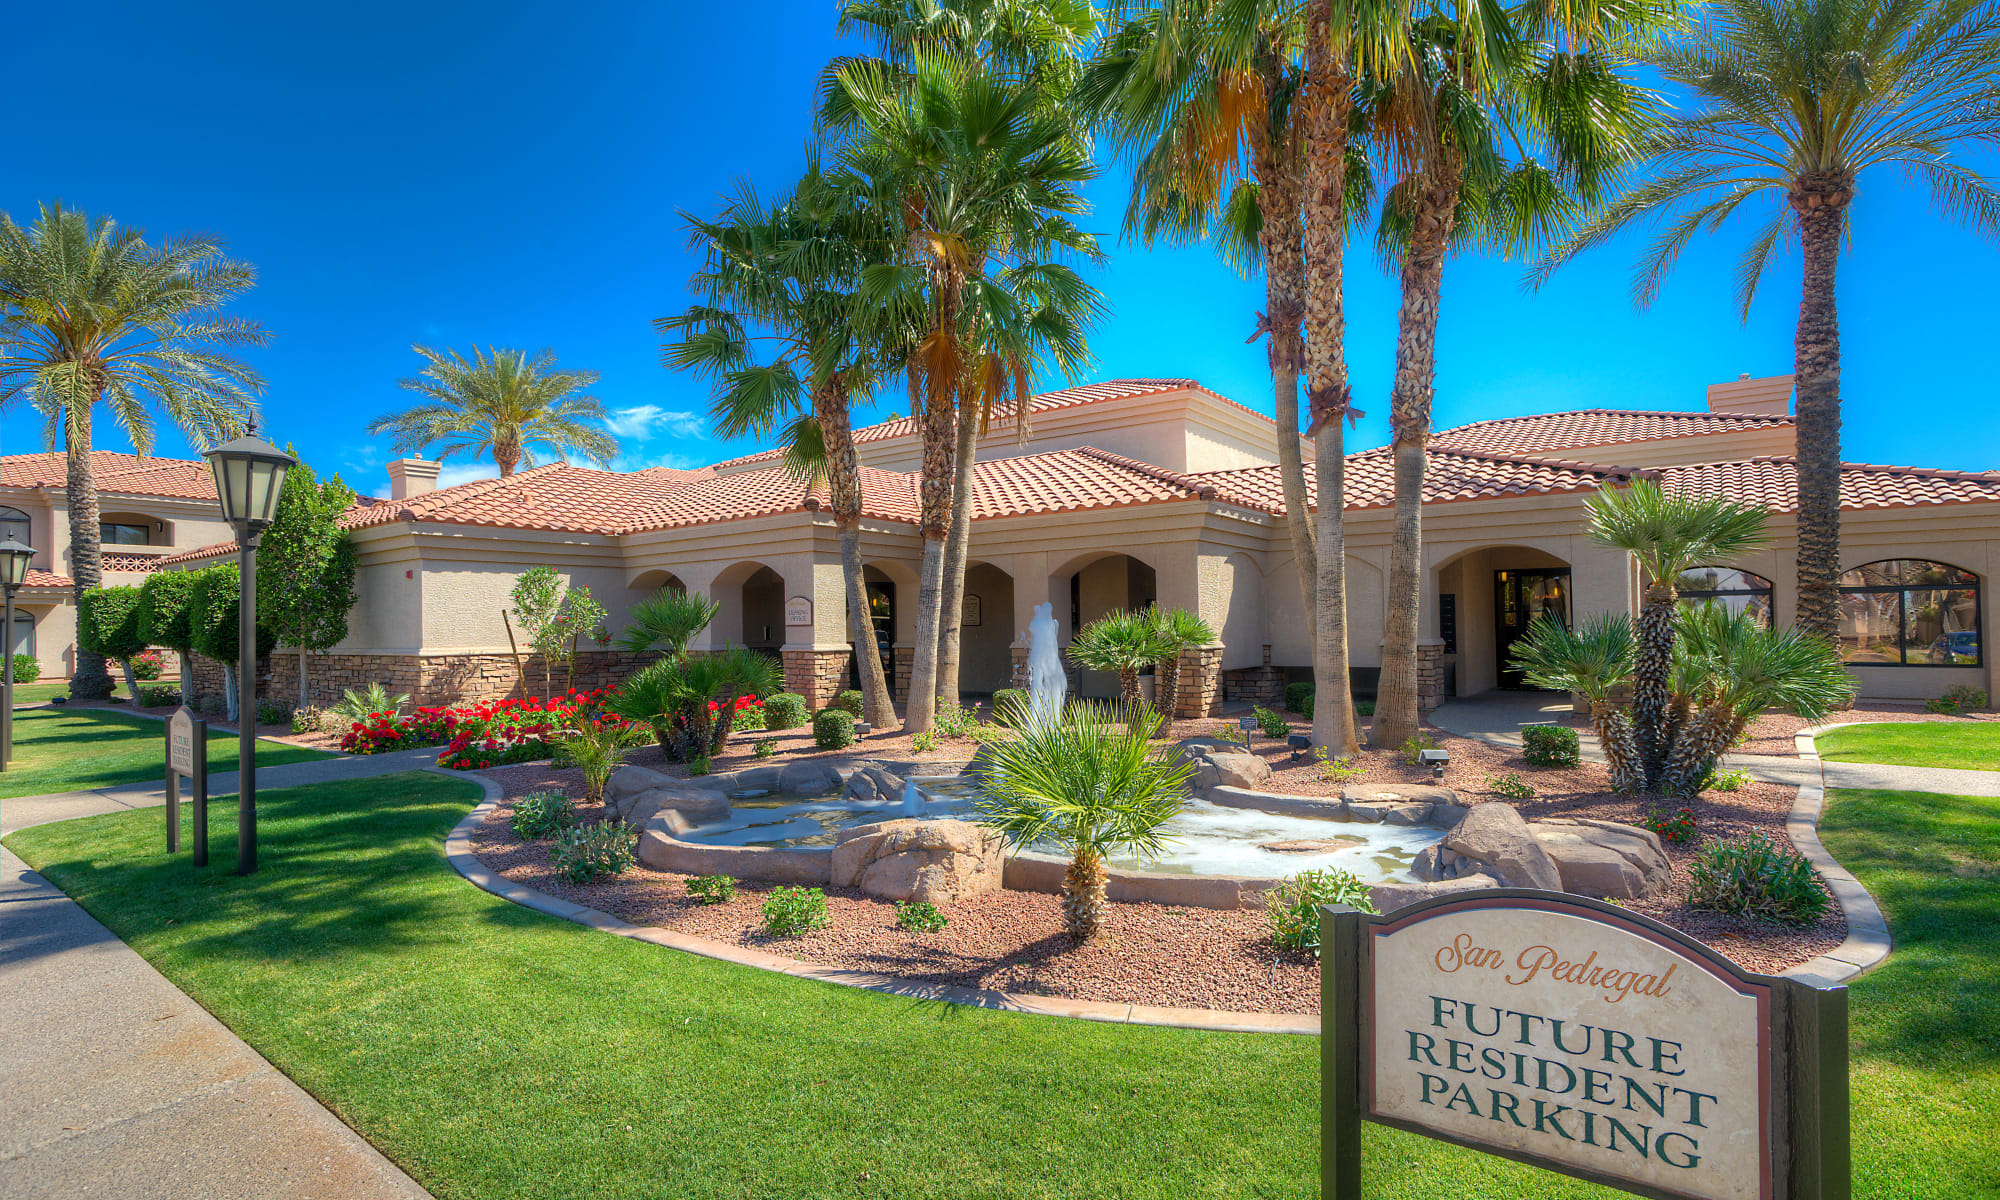 Apartments at San Pedregal in Phoenix, Arizona